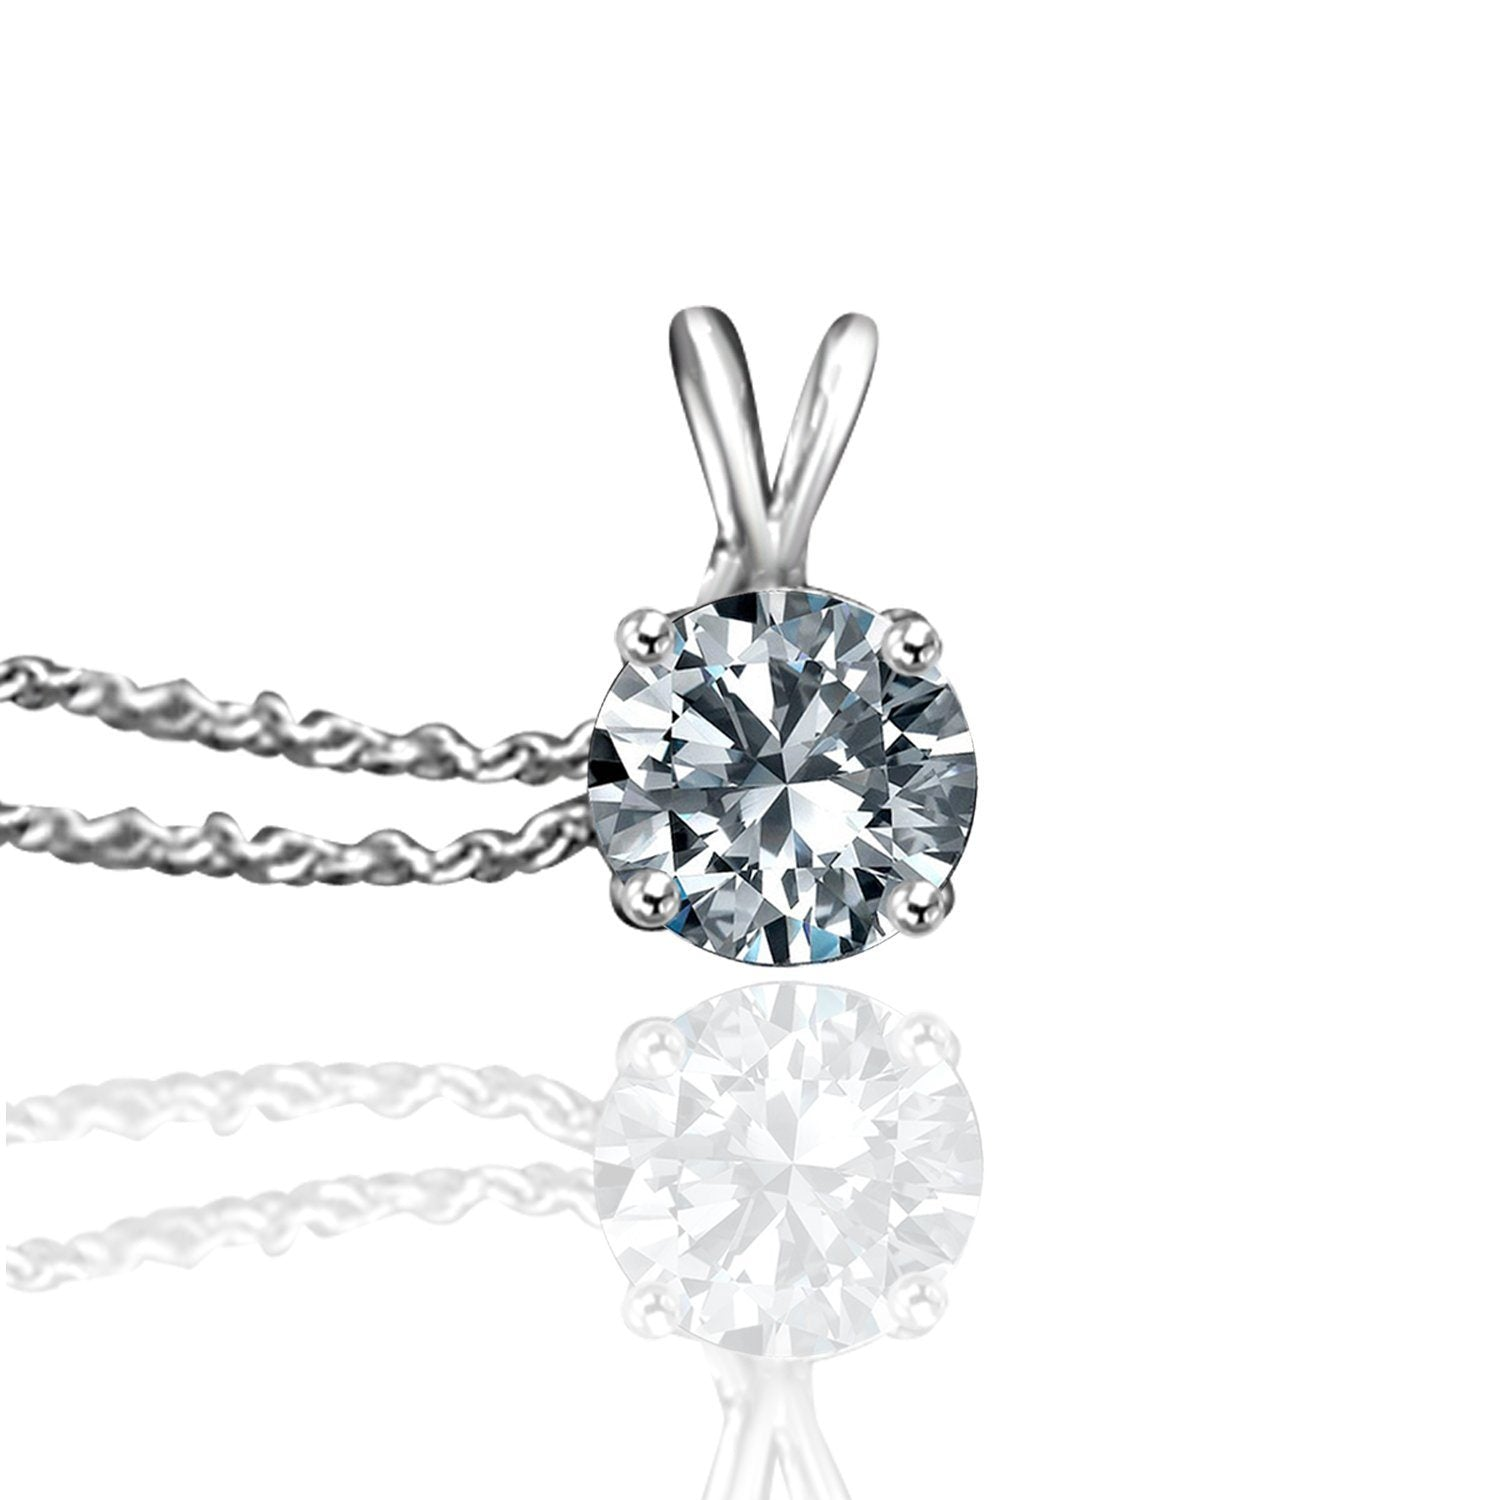 1 ct. intensely radiant round diamond veneer cubic zirconia solitaire sterling silver pendant. 635p100a